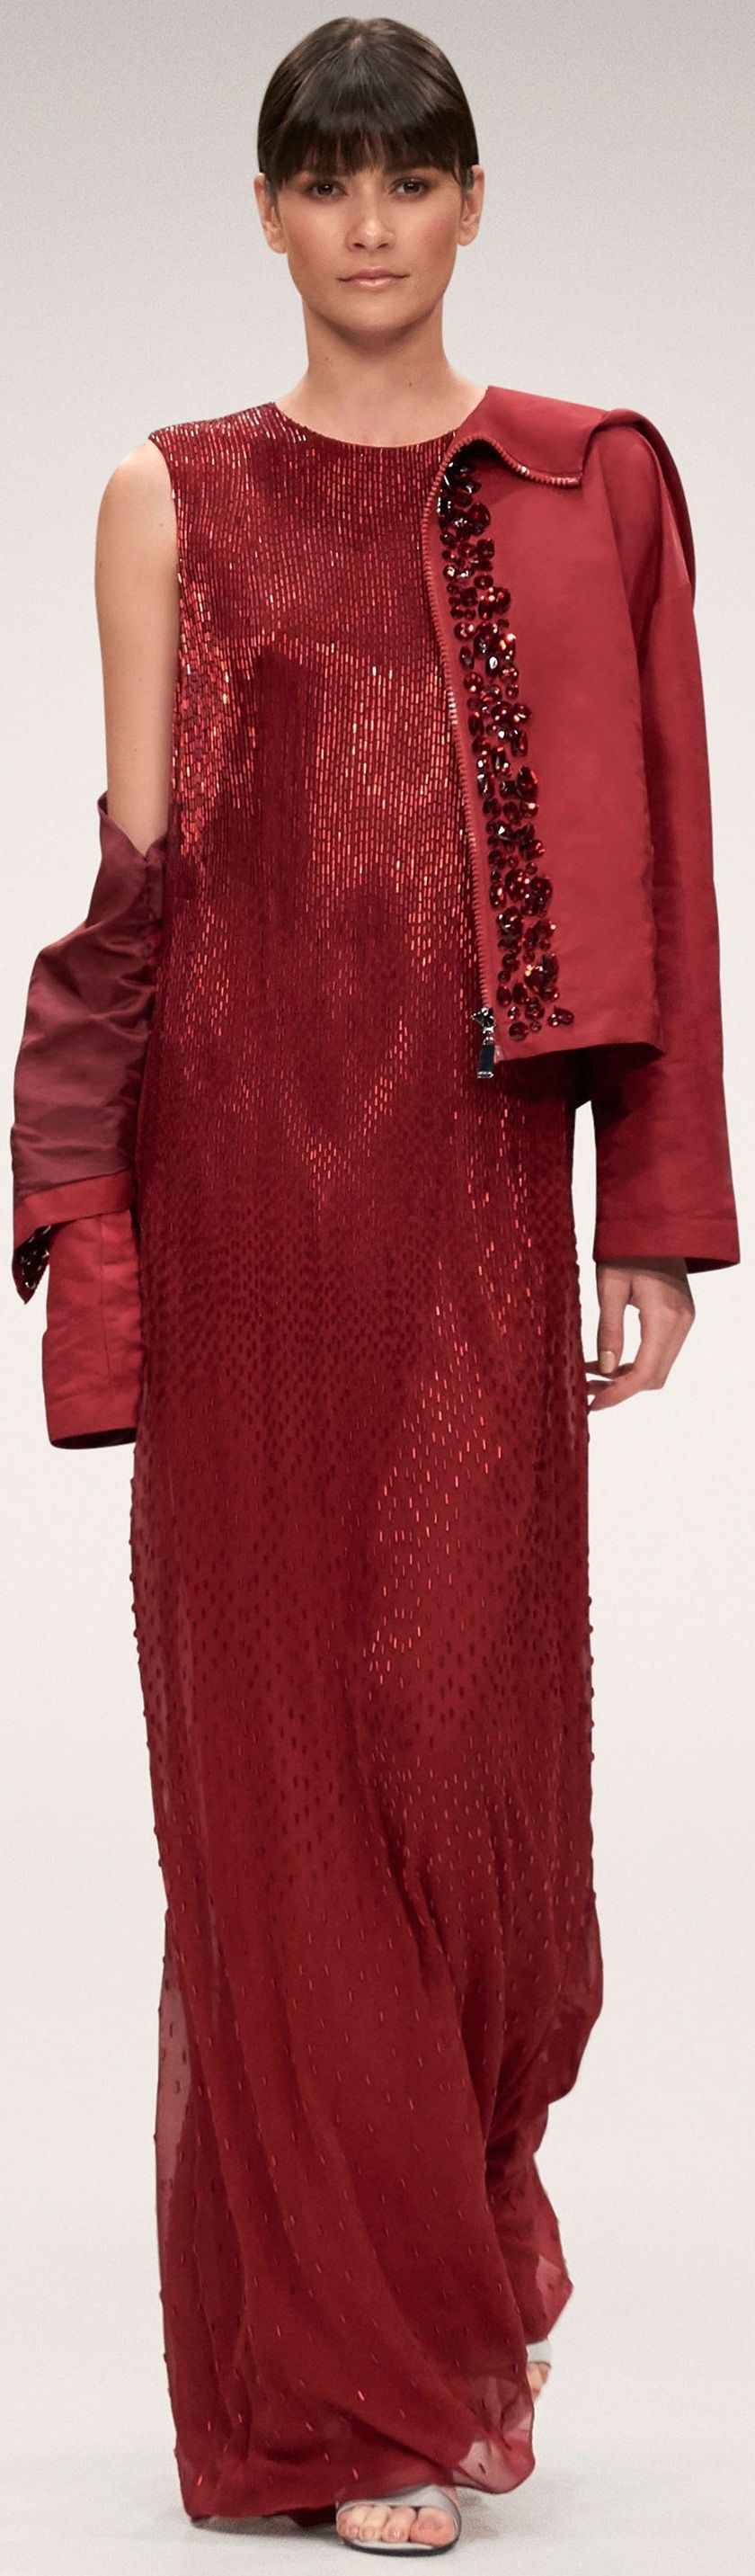 Escada ss u rtw red pinterest gowns haute couture and couture